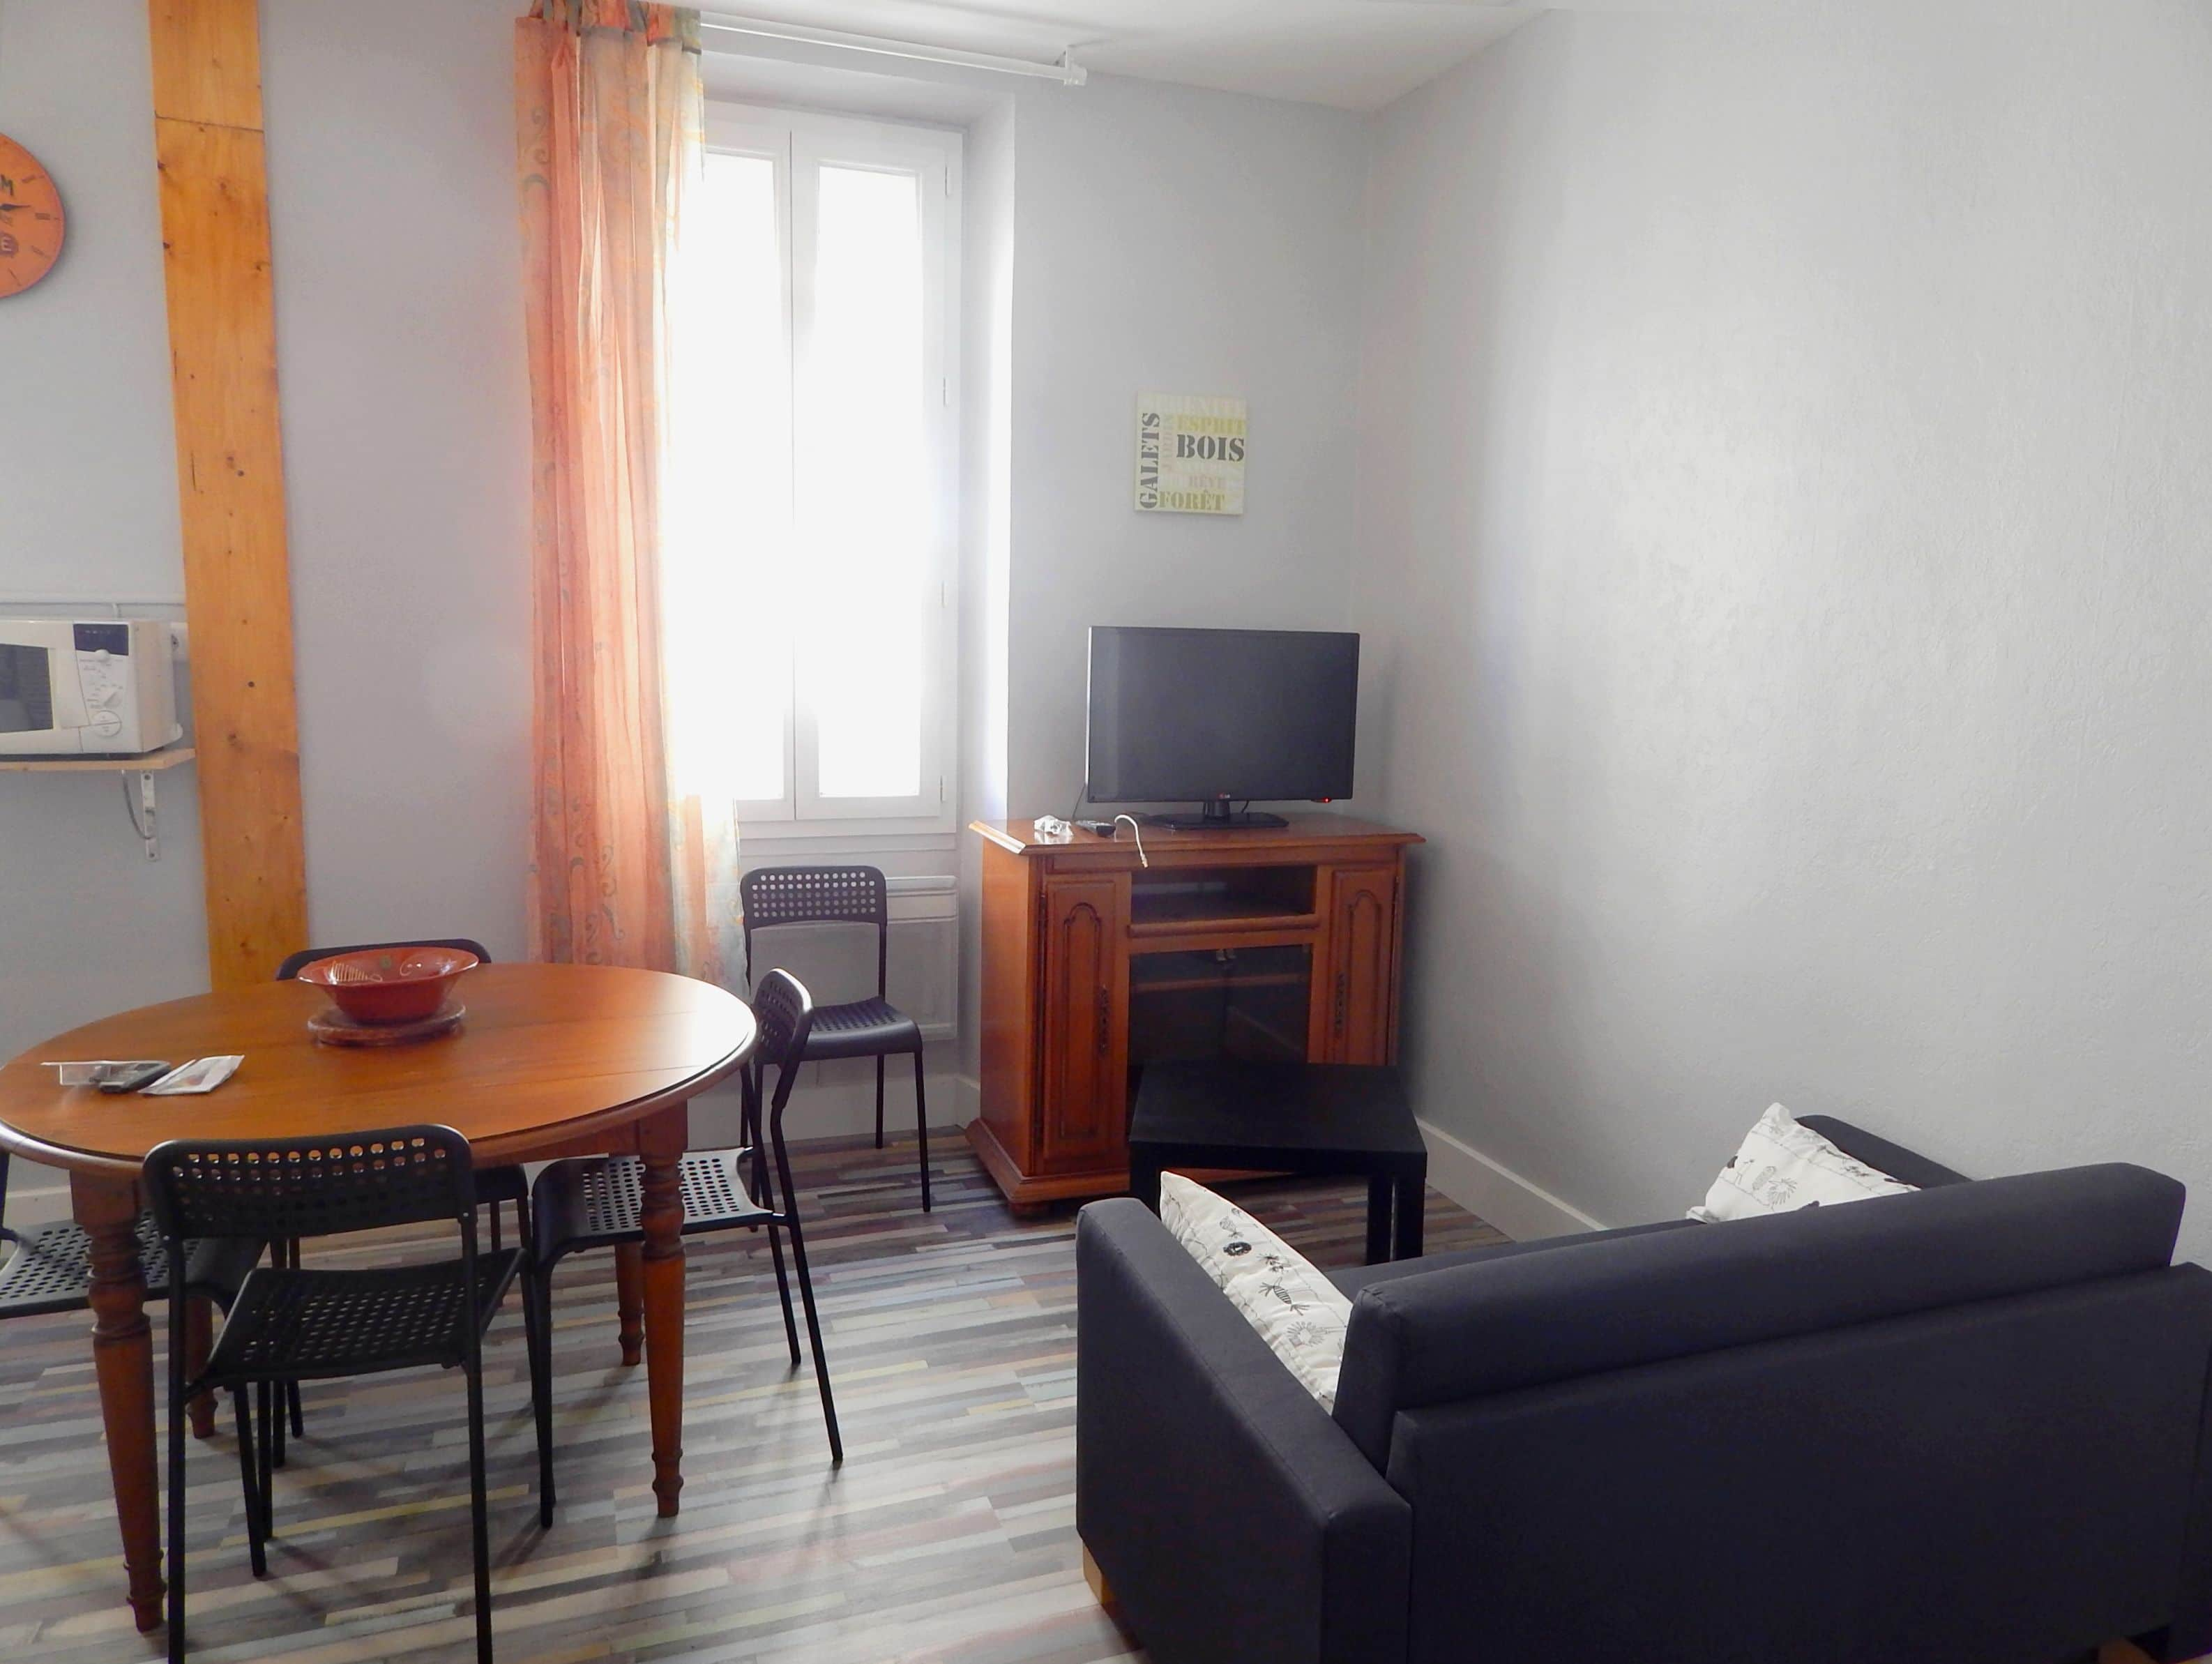 Appartement meubl a louer marseille 13010 type 2 for Location appartement meuble